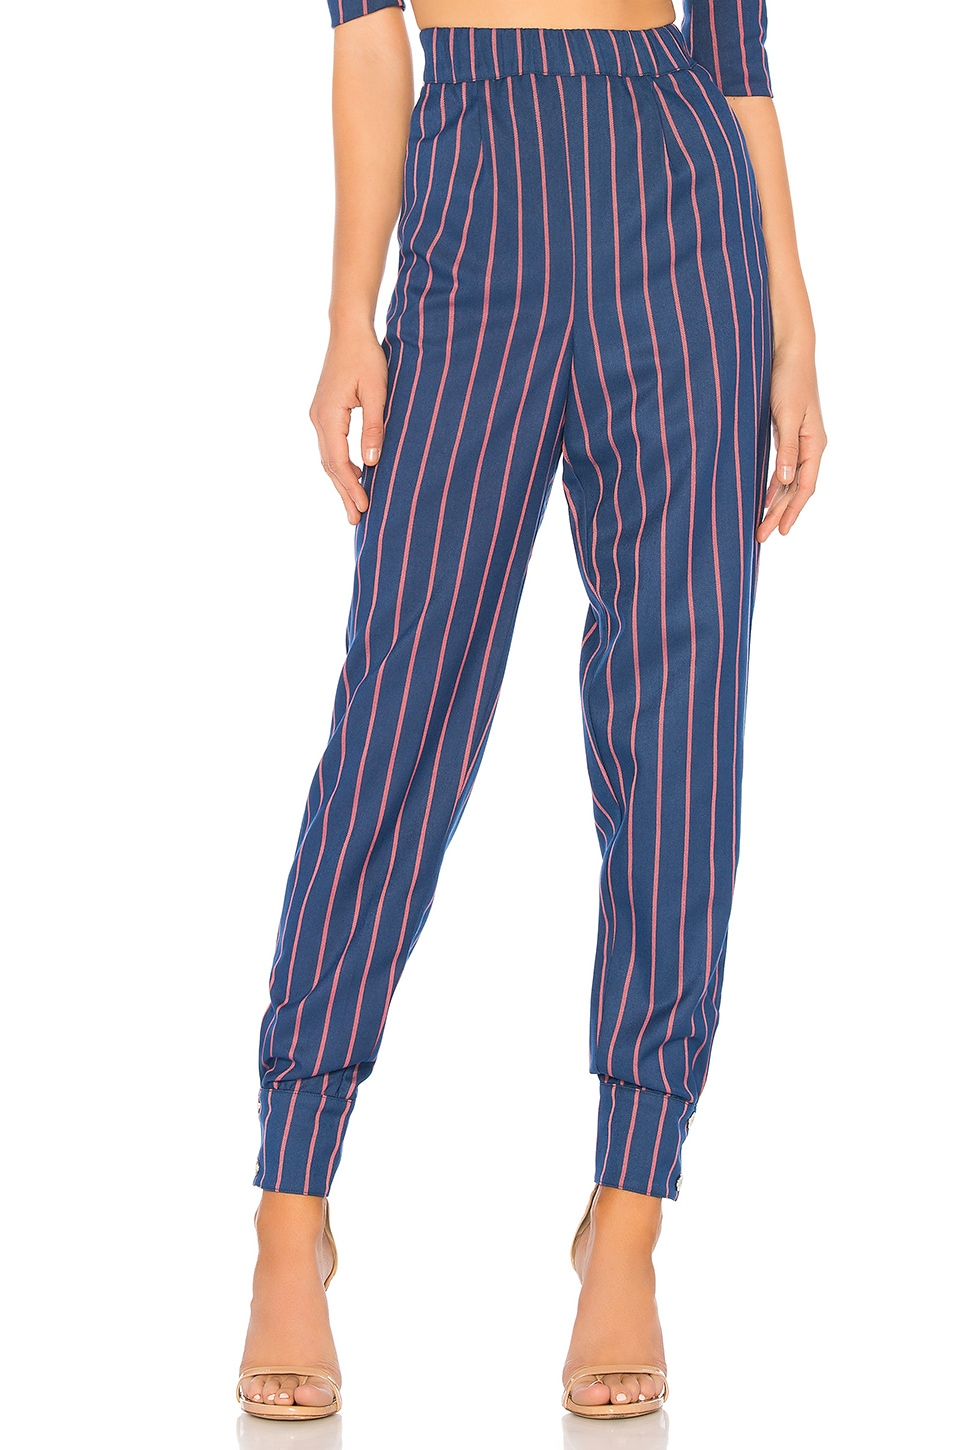 LPA Cuff Snap Pant in Navy Coral Stripe